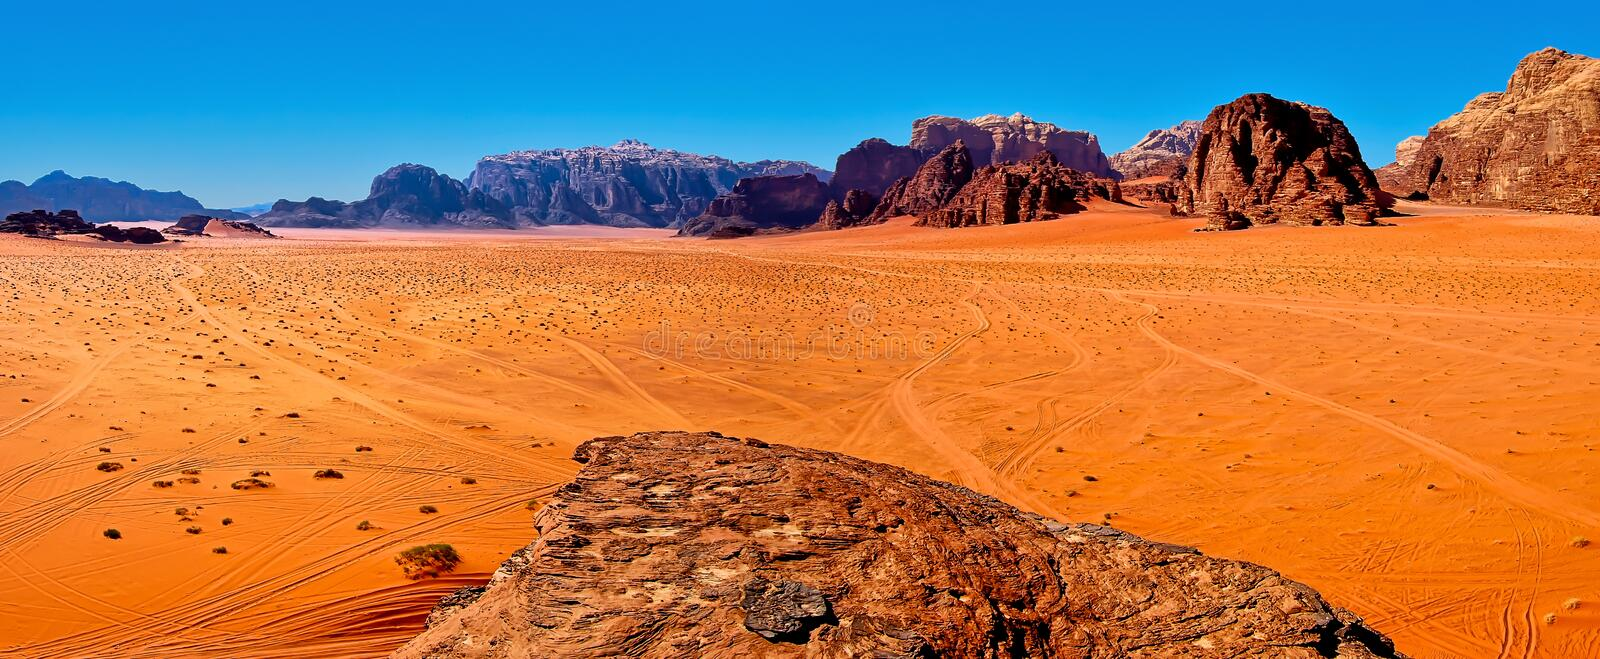 Wadi Rum. Panoramic view of the desert of Wadi Rum, Jordan stock images